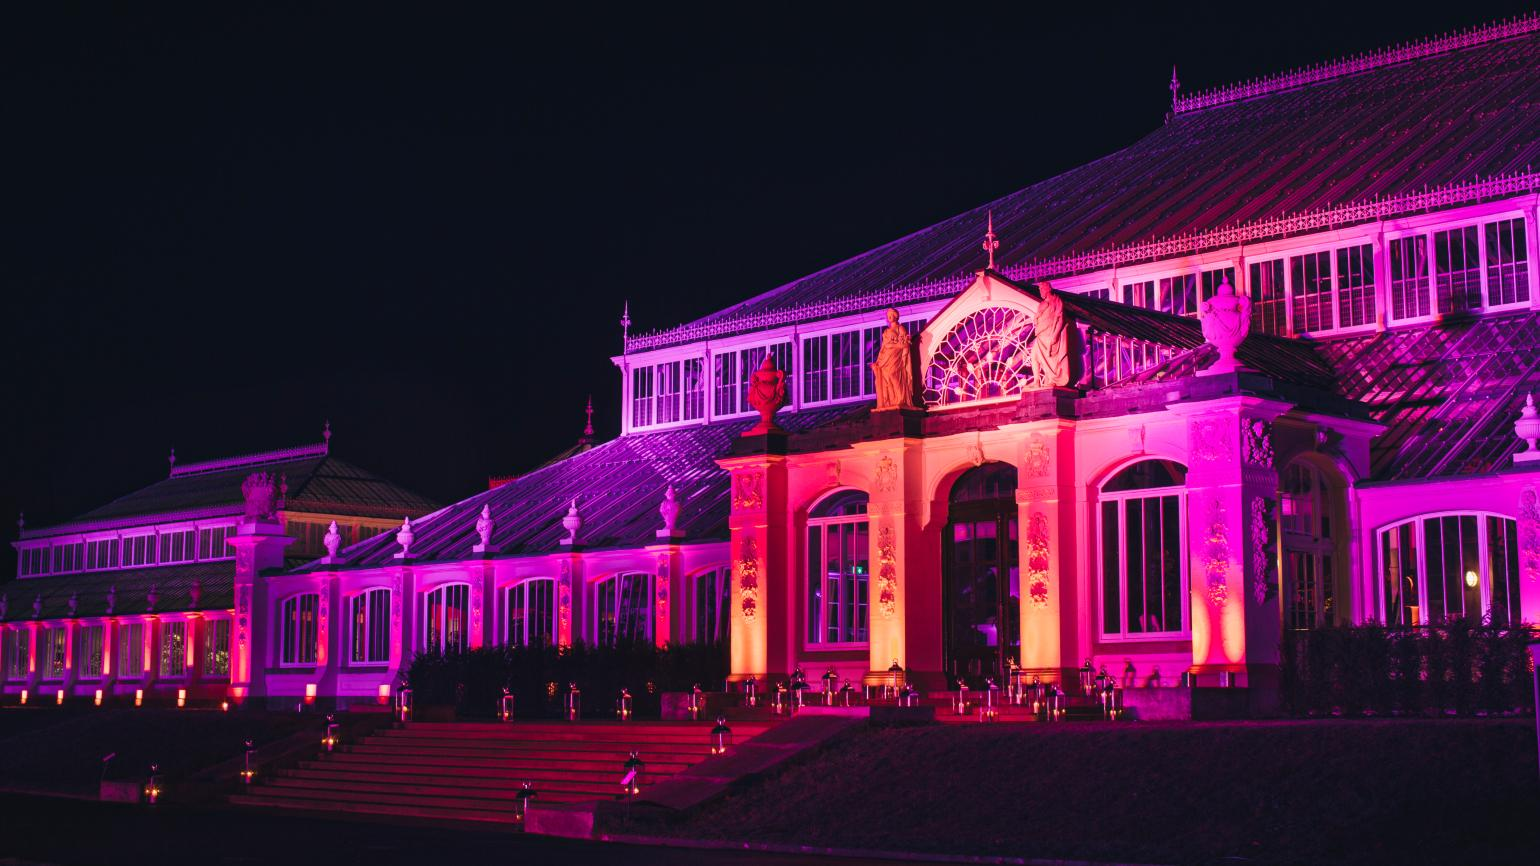 Temperate House illuminated at night